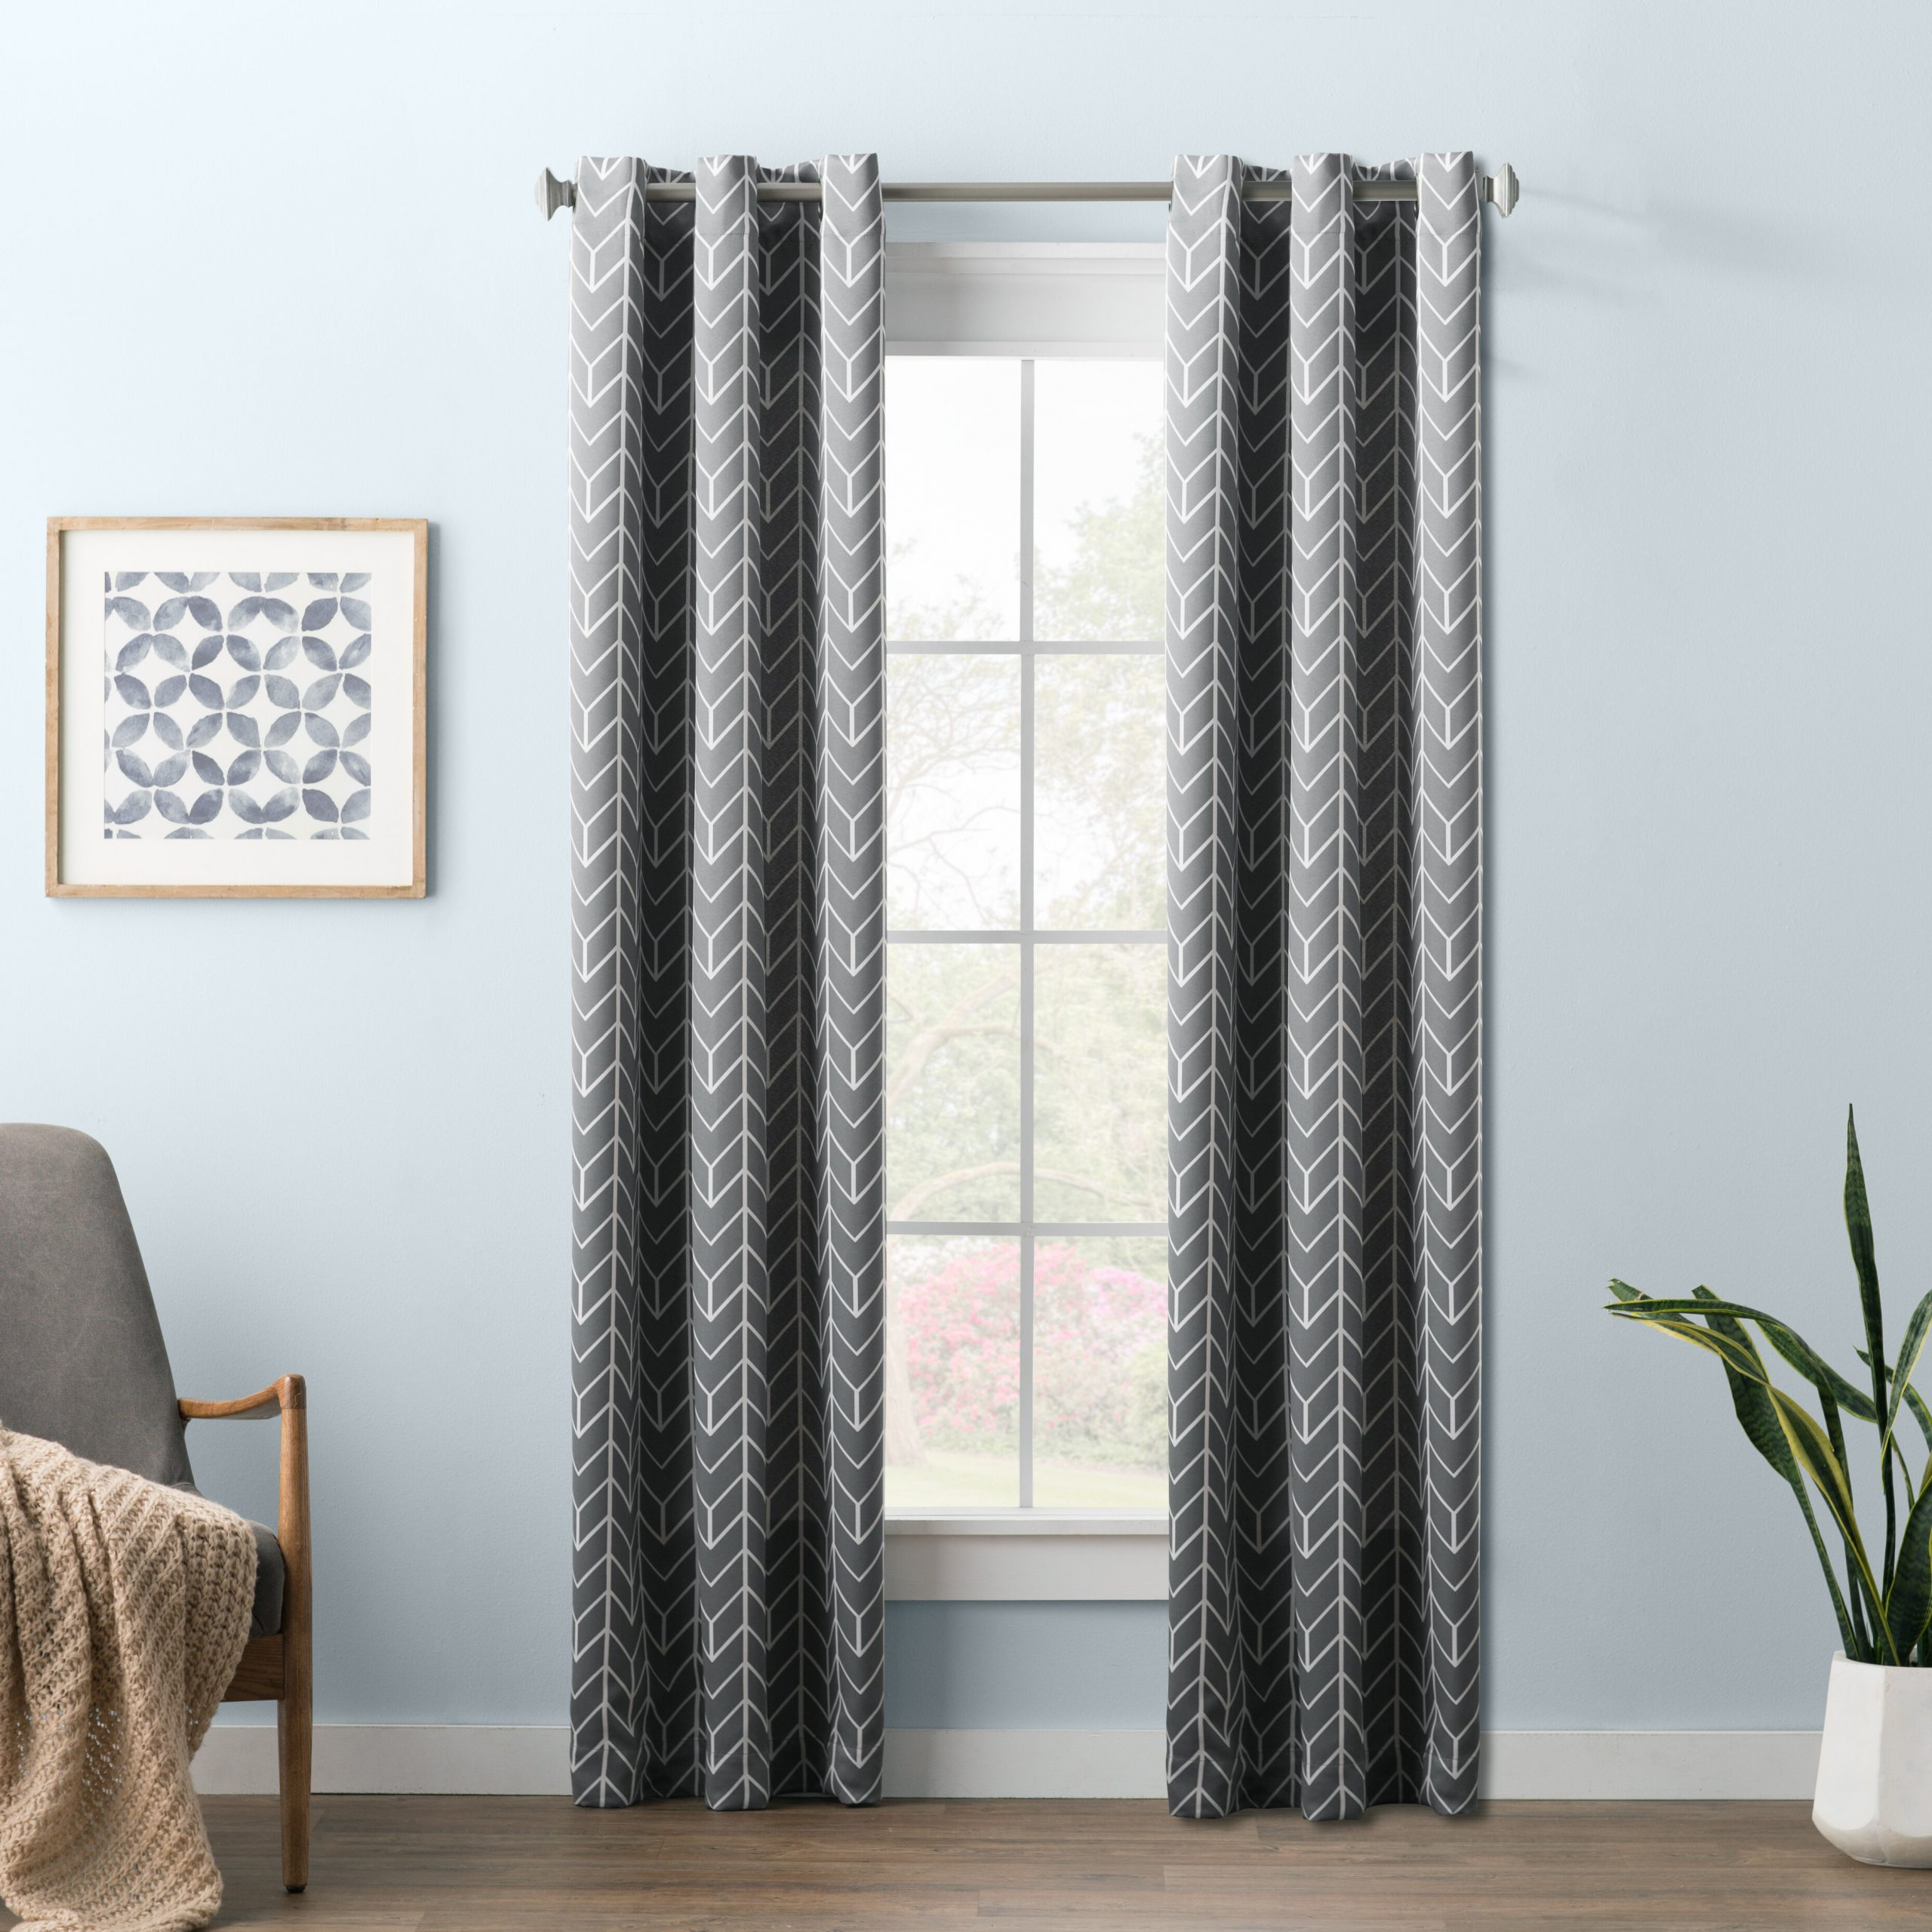 Widely Used Wayfair Basics Chevron Blackout Single Curtain Panel Intended For Chevron Blackout Grommet Curtain Panels (View 20 of 20)